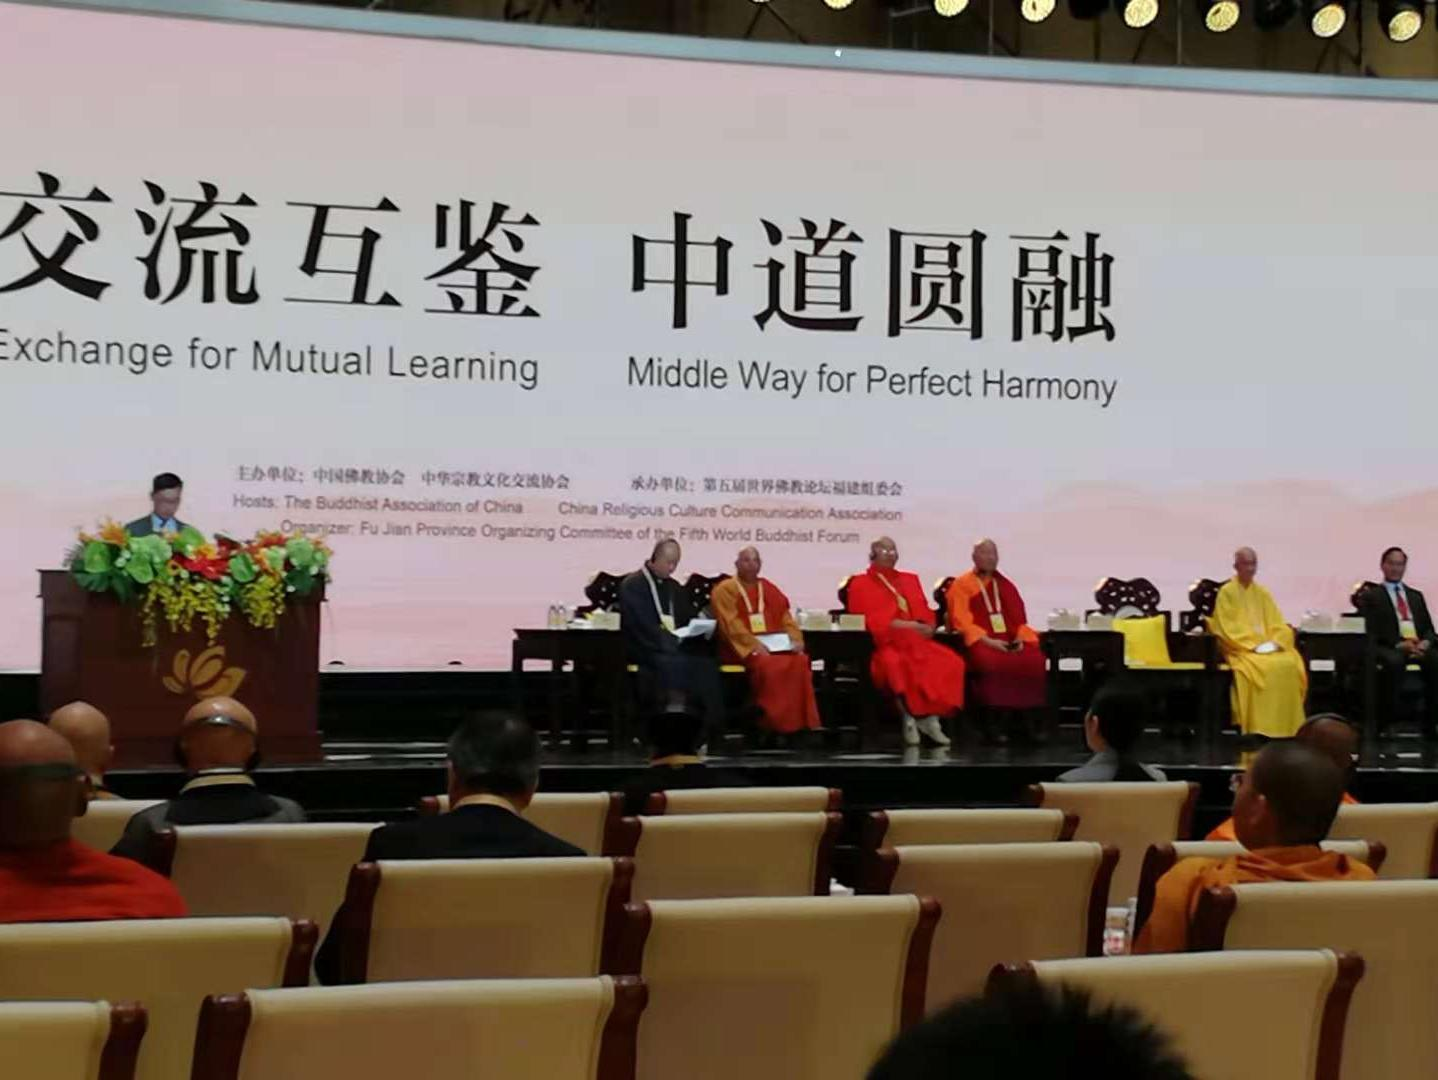 Director Jiang Wu giving the keynote speech at the Fifth World Buddhist Forum in Putian, China